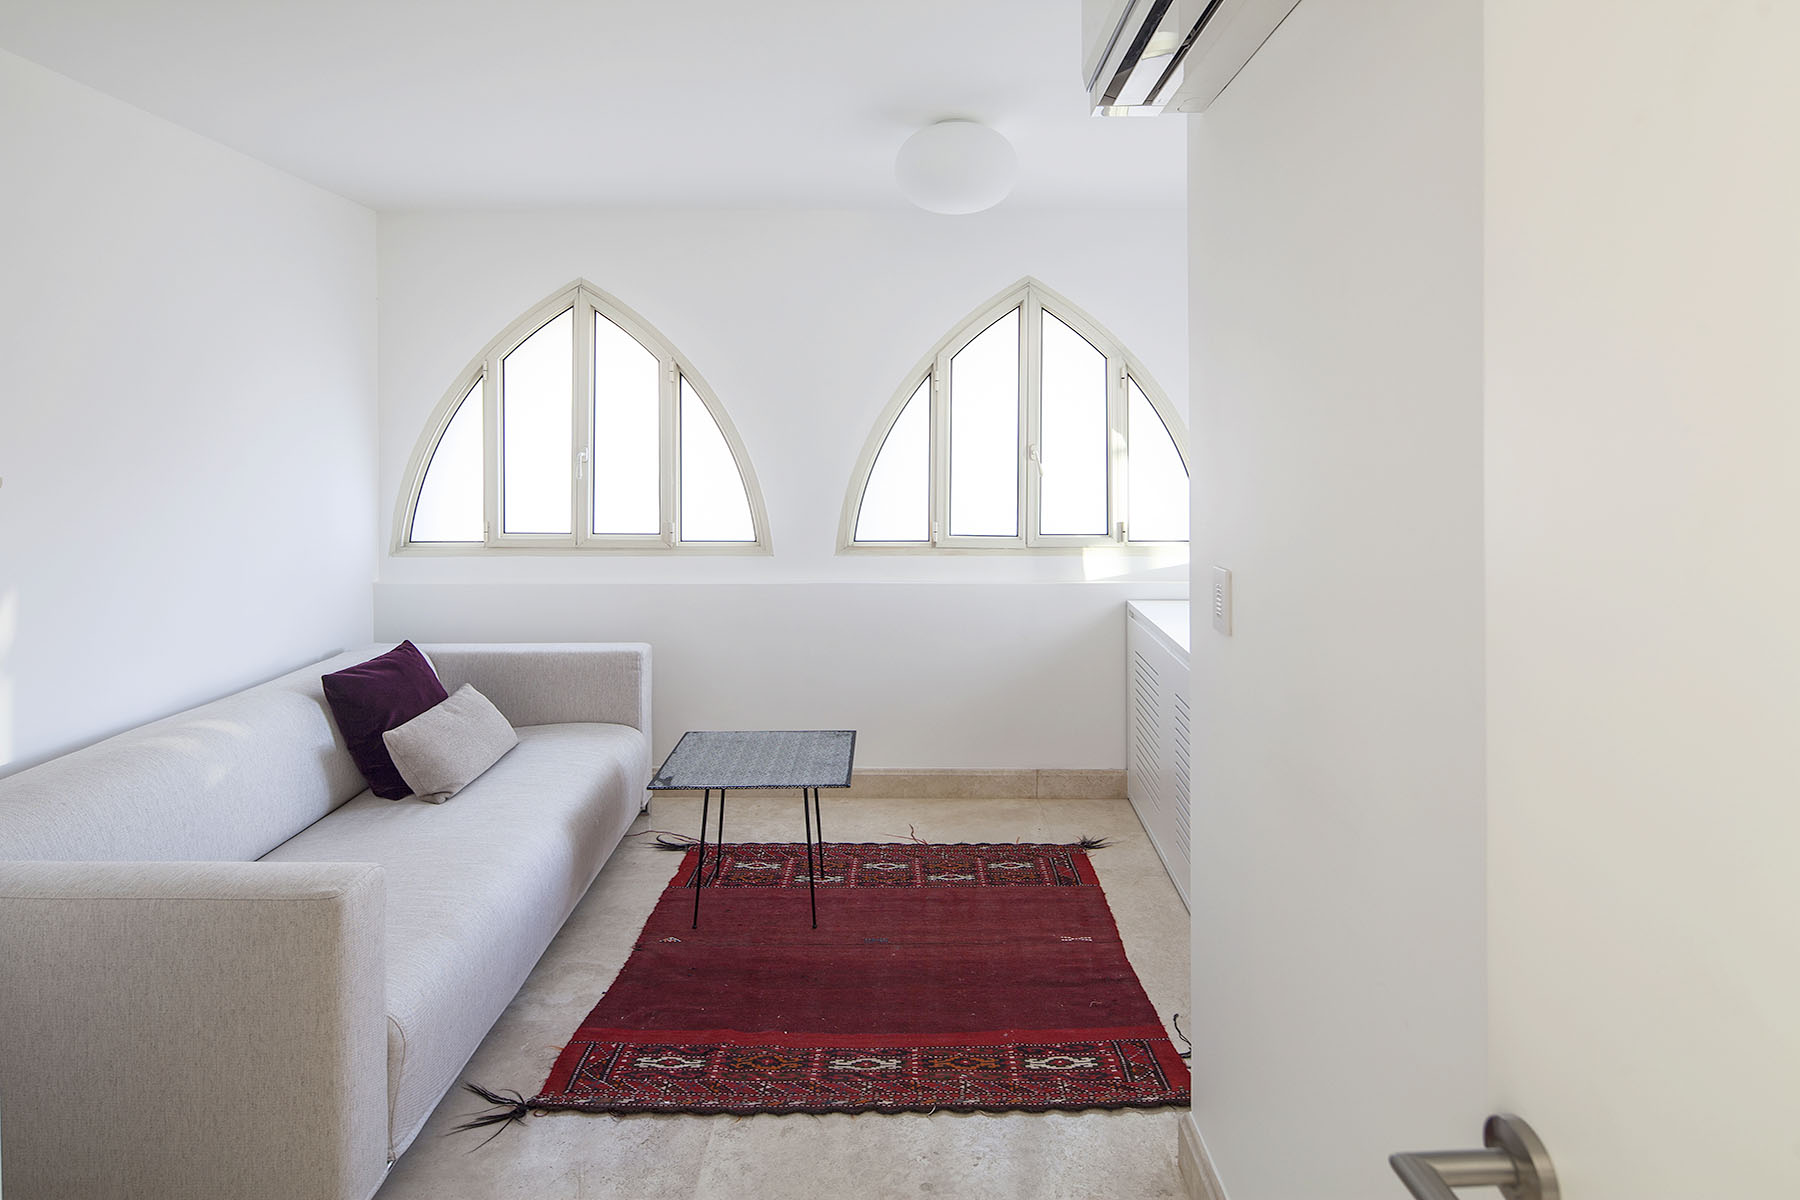 Additional photo for property listing at One of a Kind Historical Triplex Apartment in Jaffa 佳发, 以色列 以色列